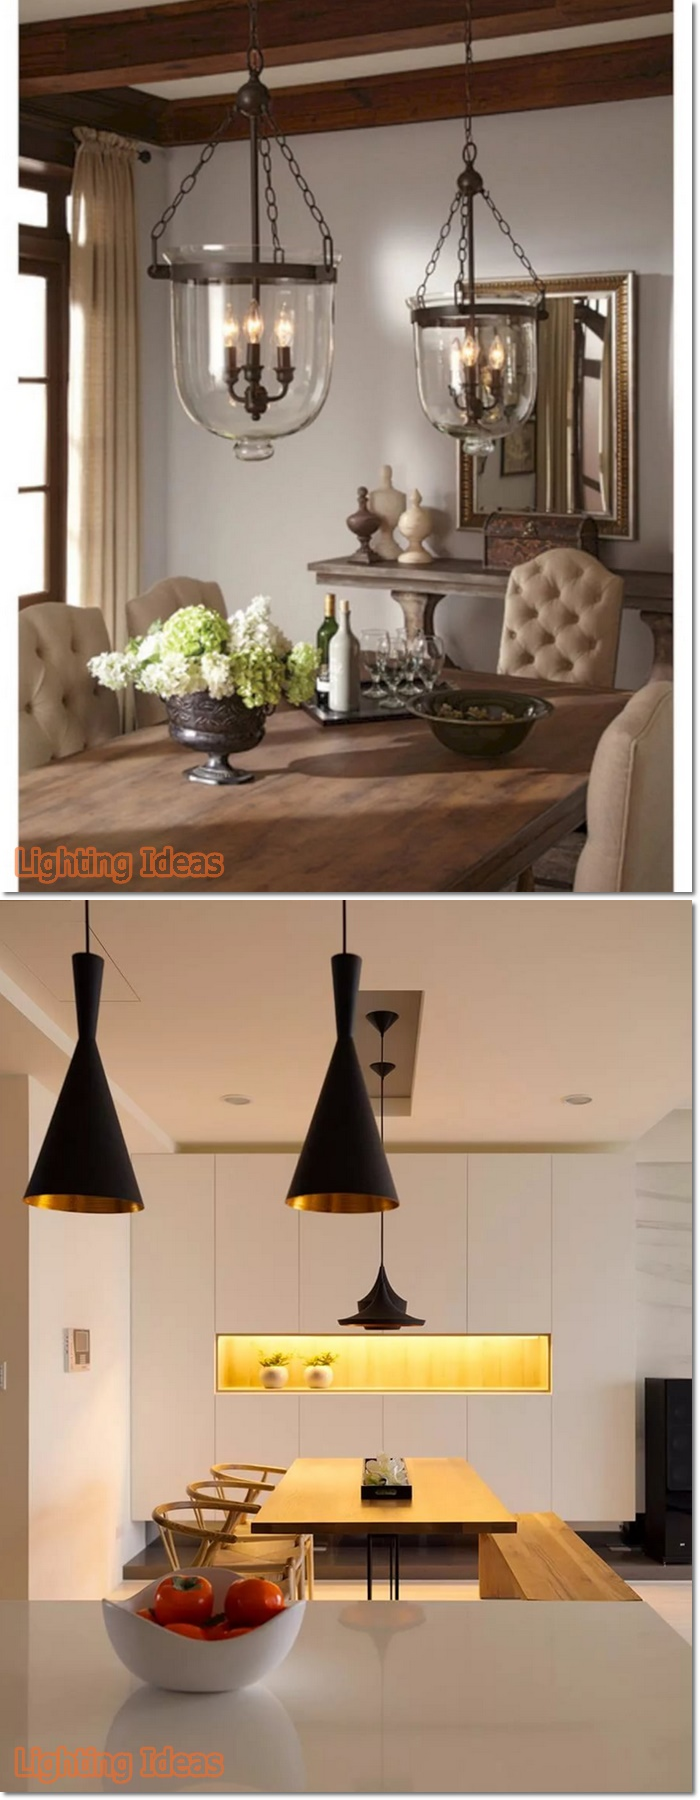 Lighting Ideas 2020 How Can I Light A Room Without A Cei